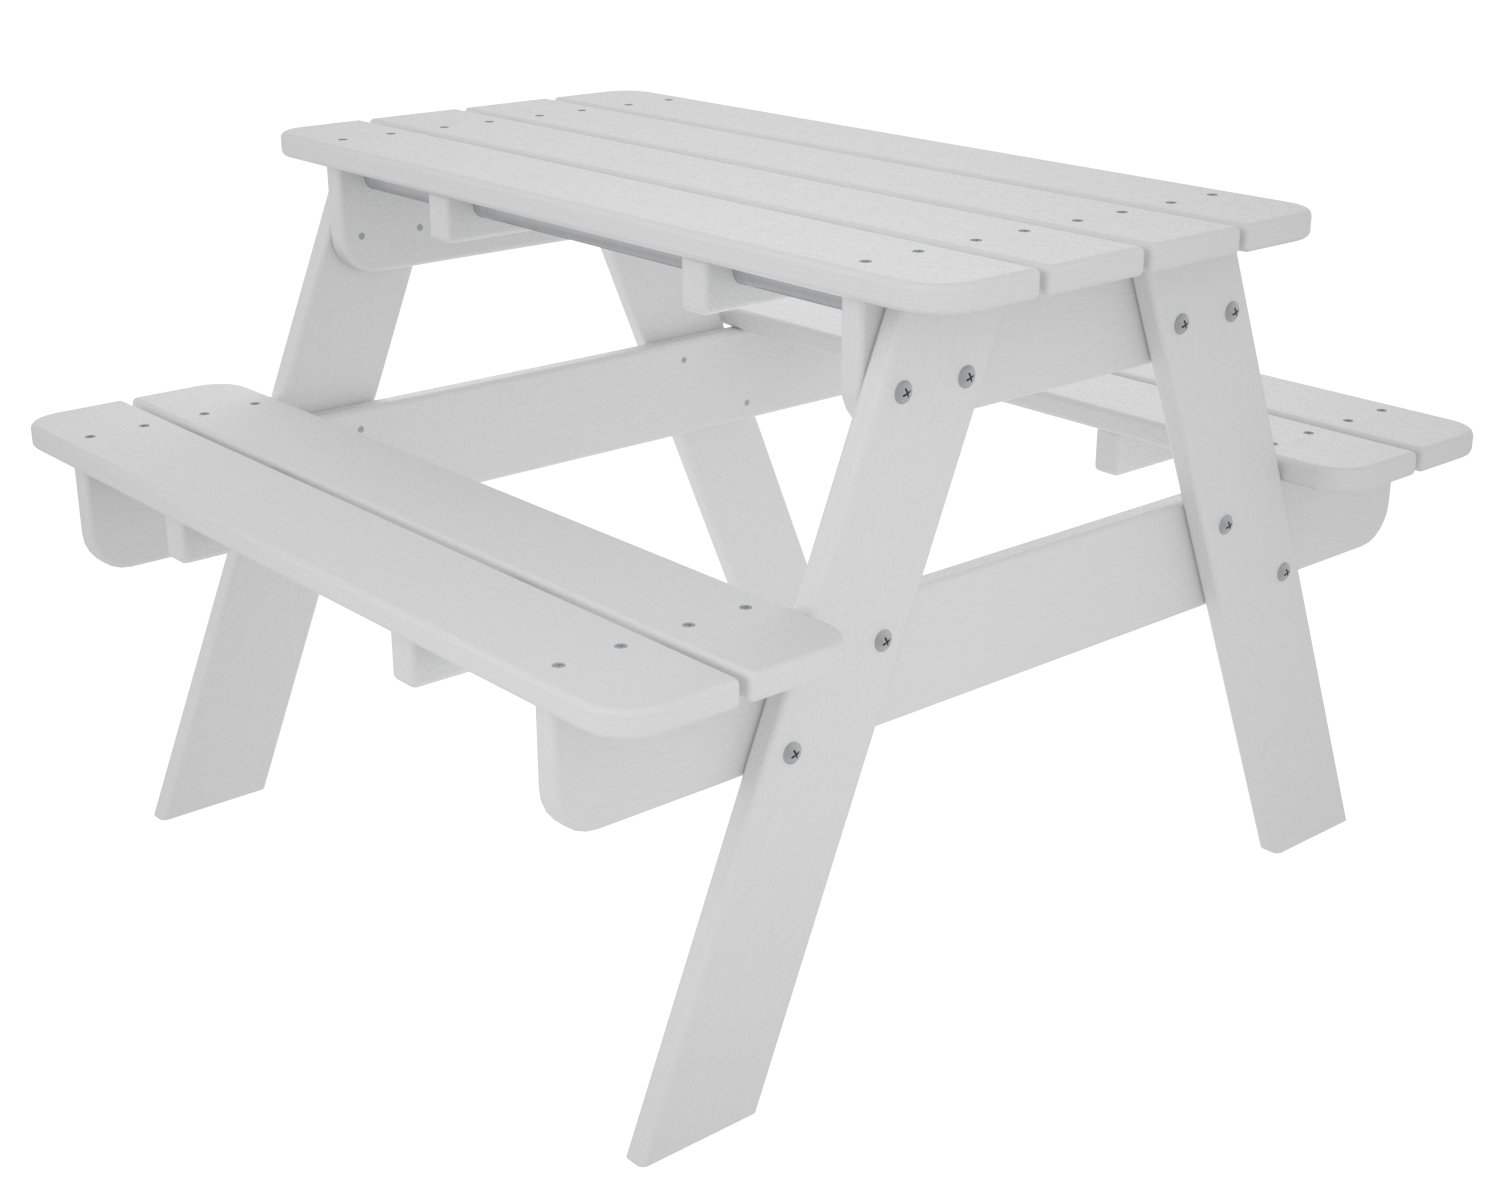 Amazon.com : POLYWOOD KT130WH Kids Picnic Table, White : Garden U0026 Outdoor